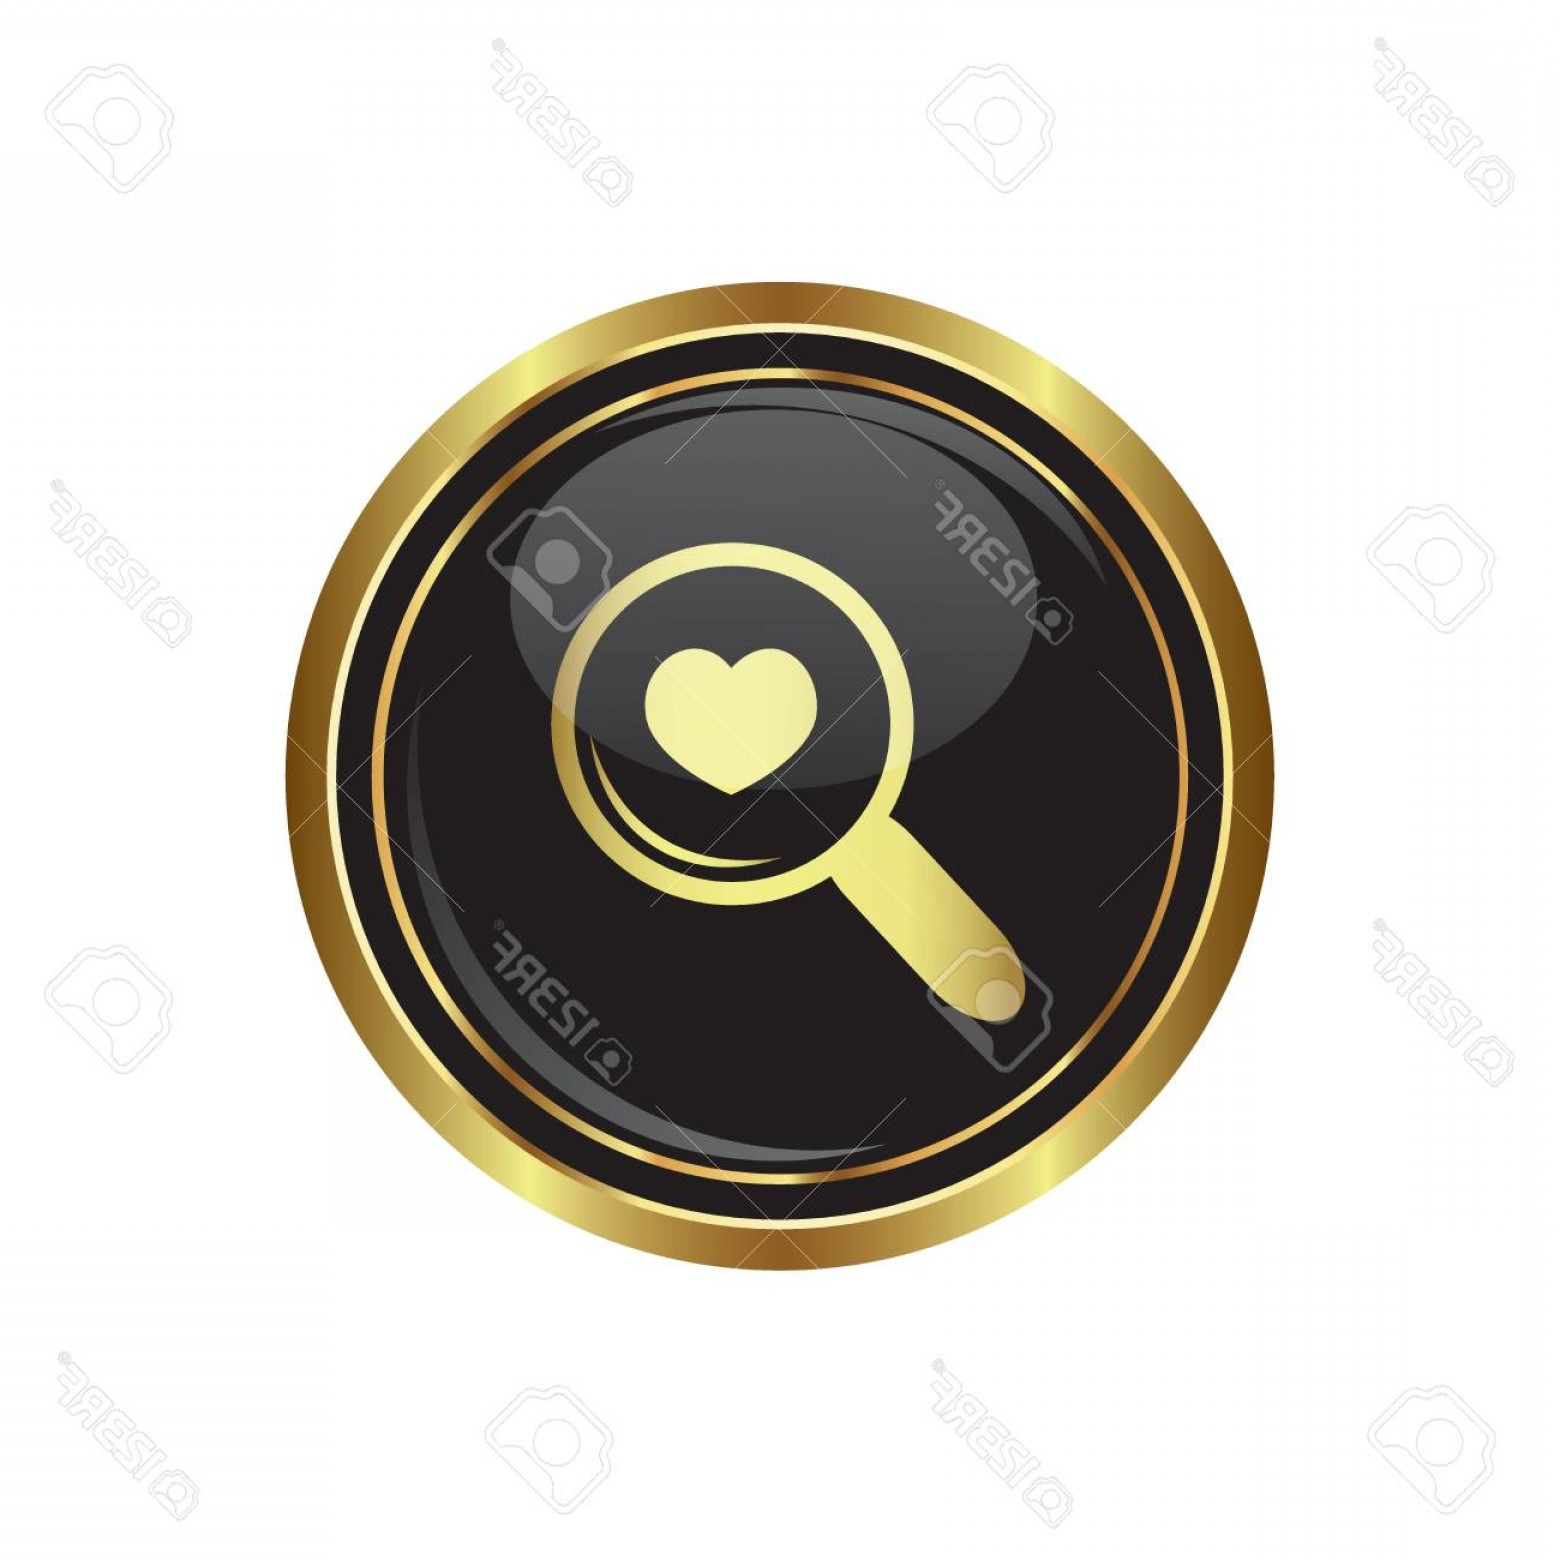 Gold Button Vector: Photozoom Icon With Heart On Black With Gold Button Vector Illustration